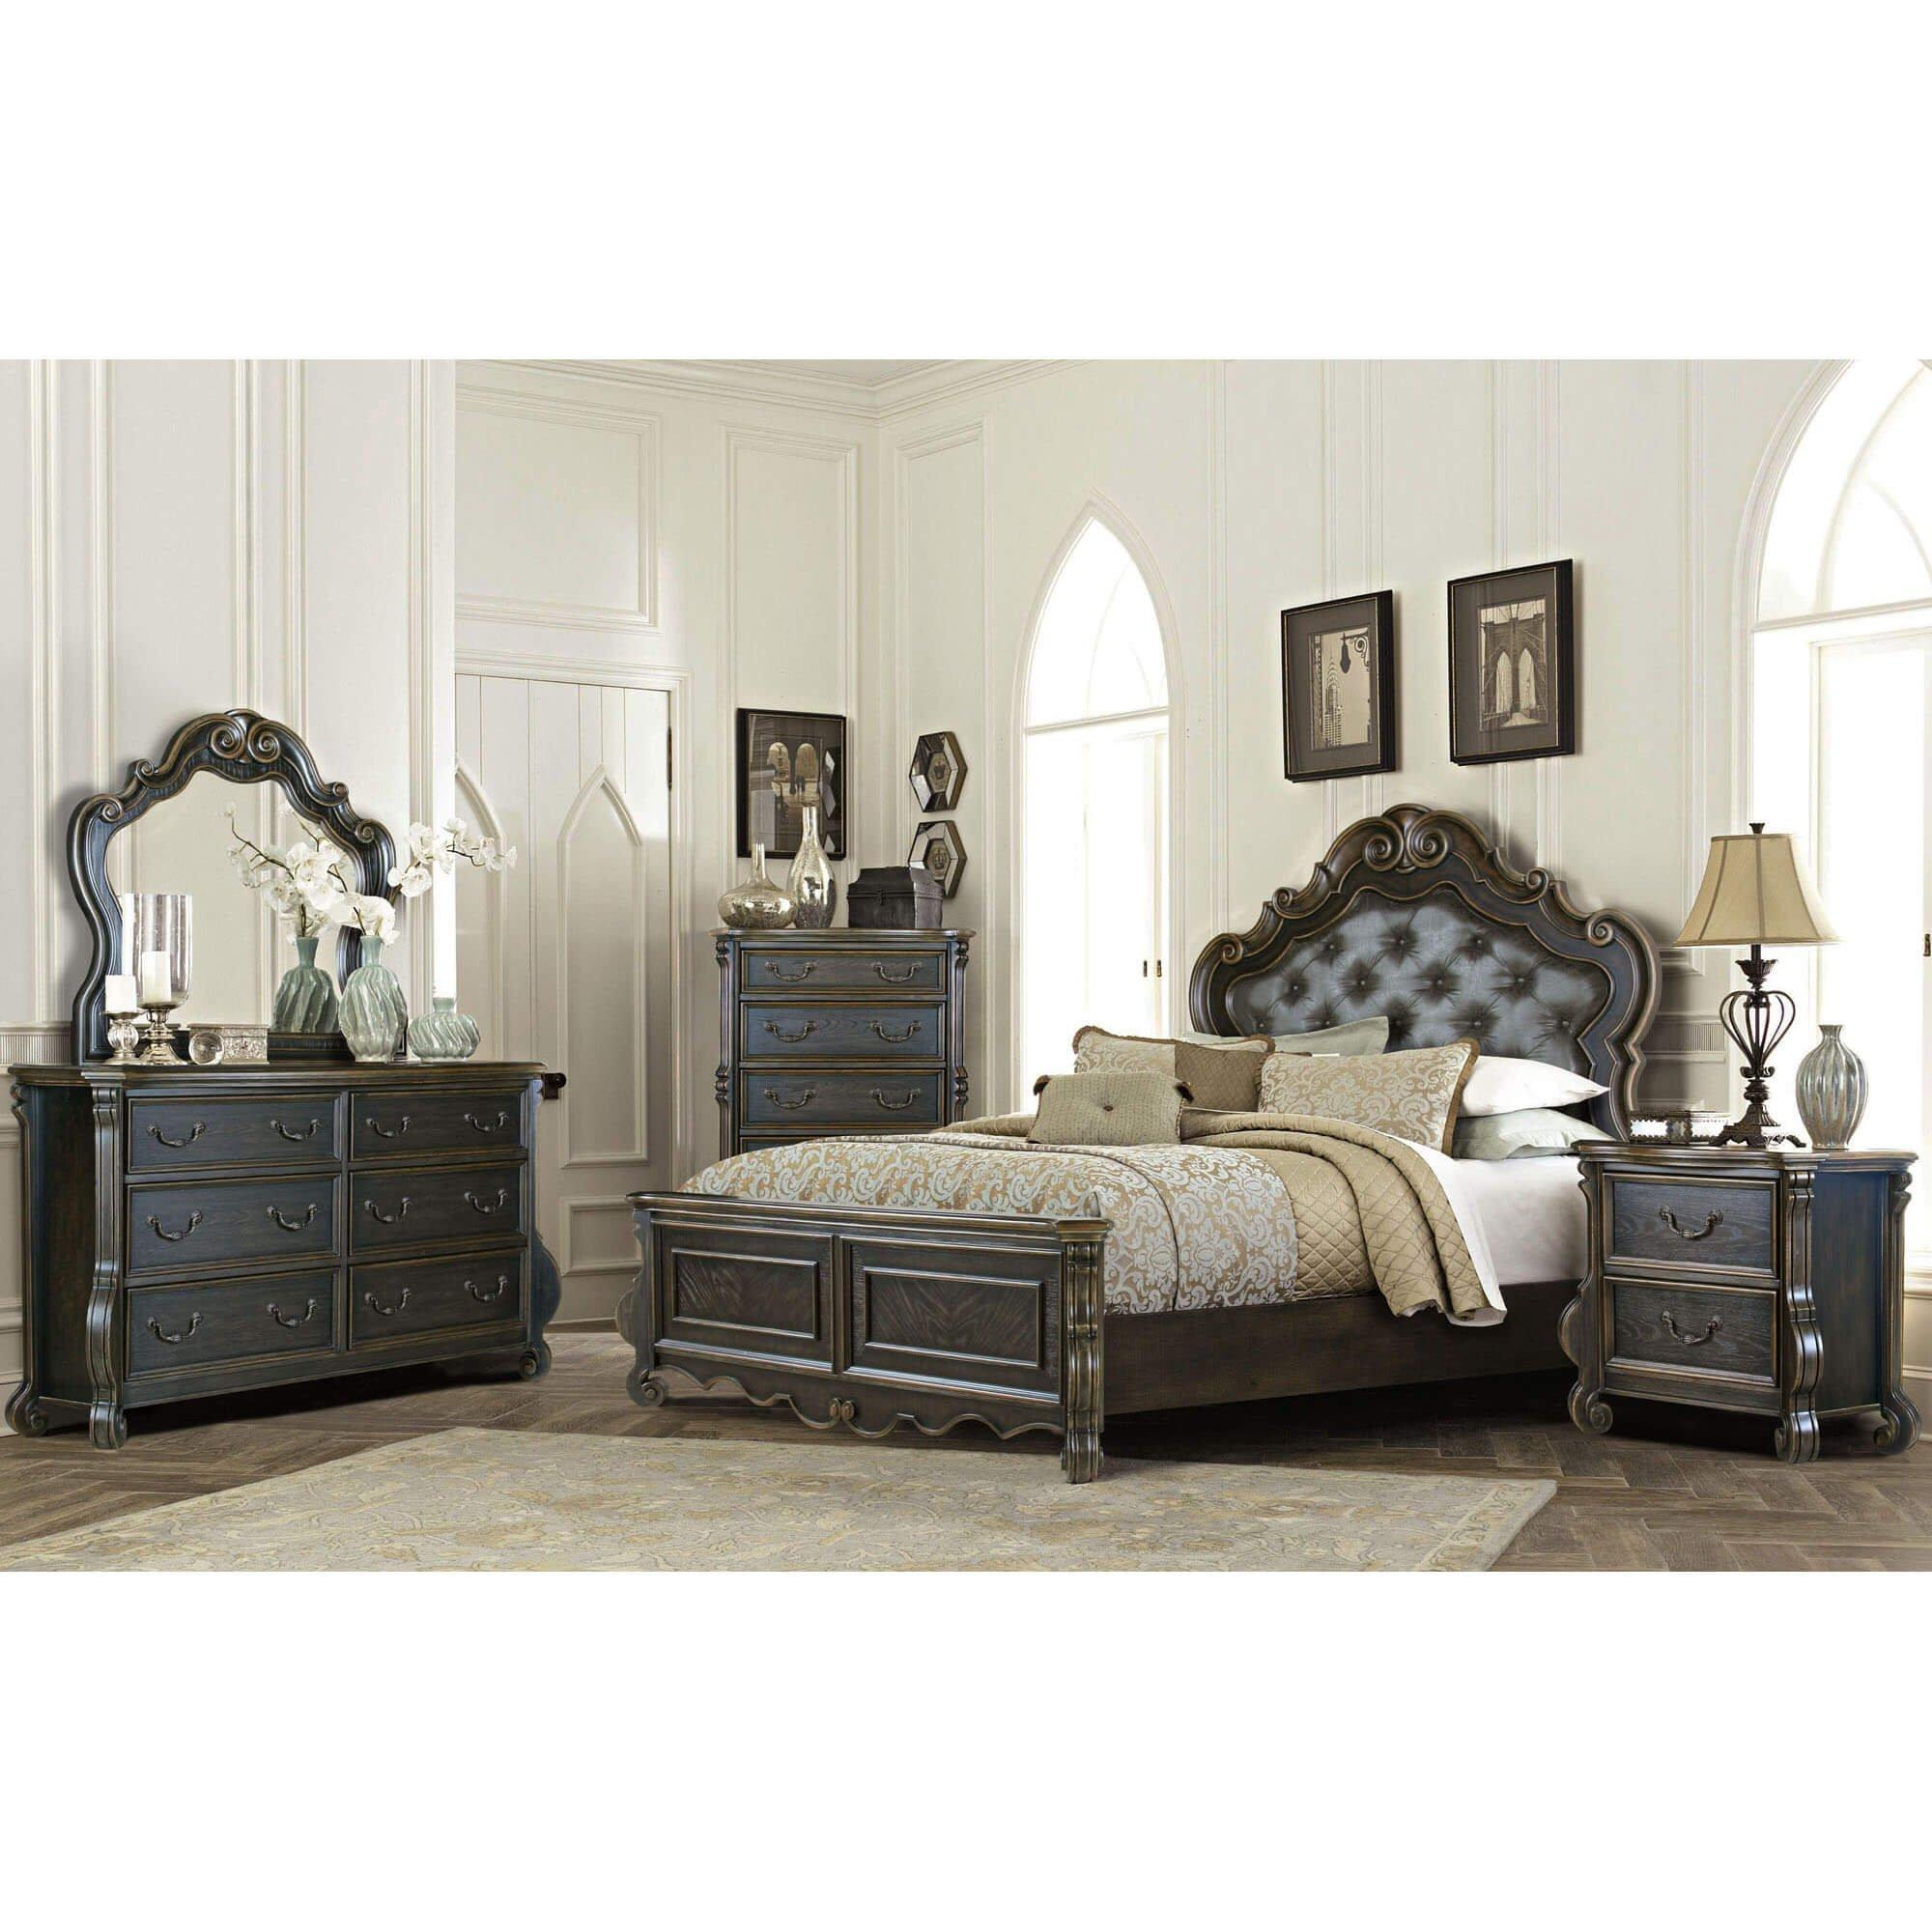 Rent To Own Riversedge Furniture 7 Piece Charlotte King Bedroom Collection At Aaron S Today